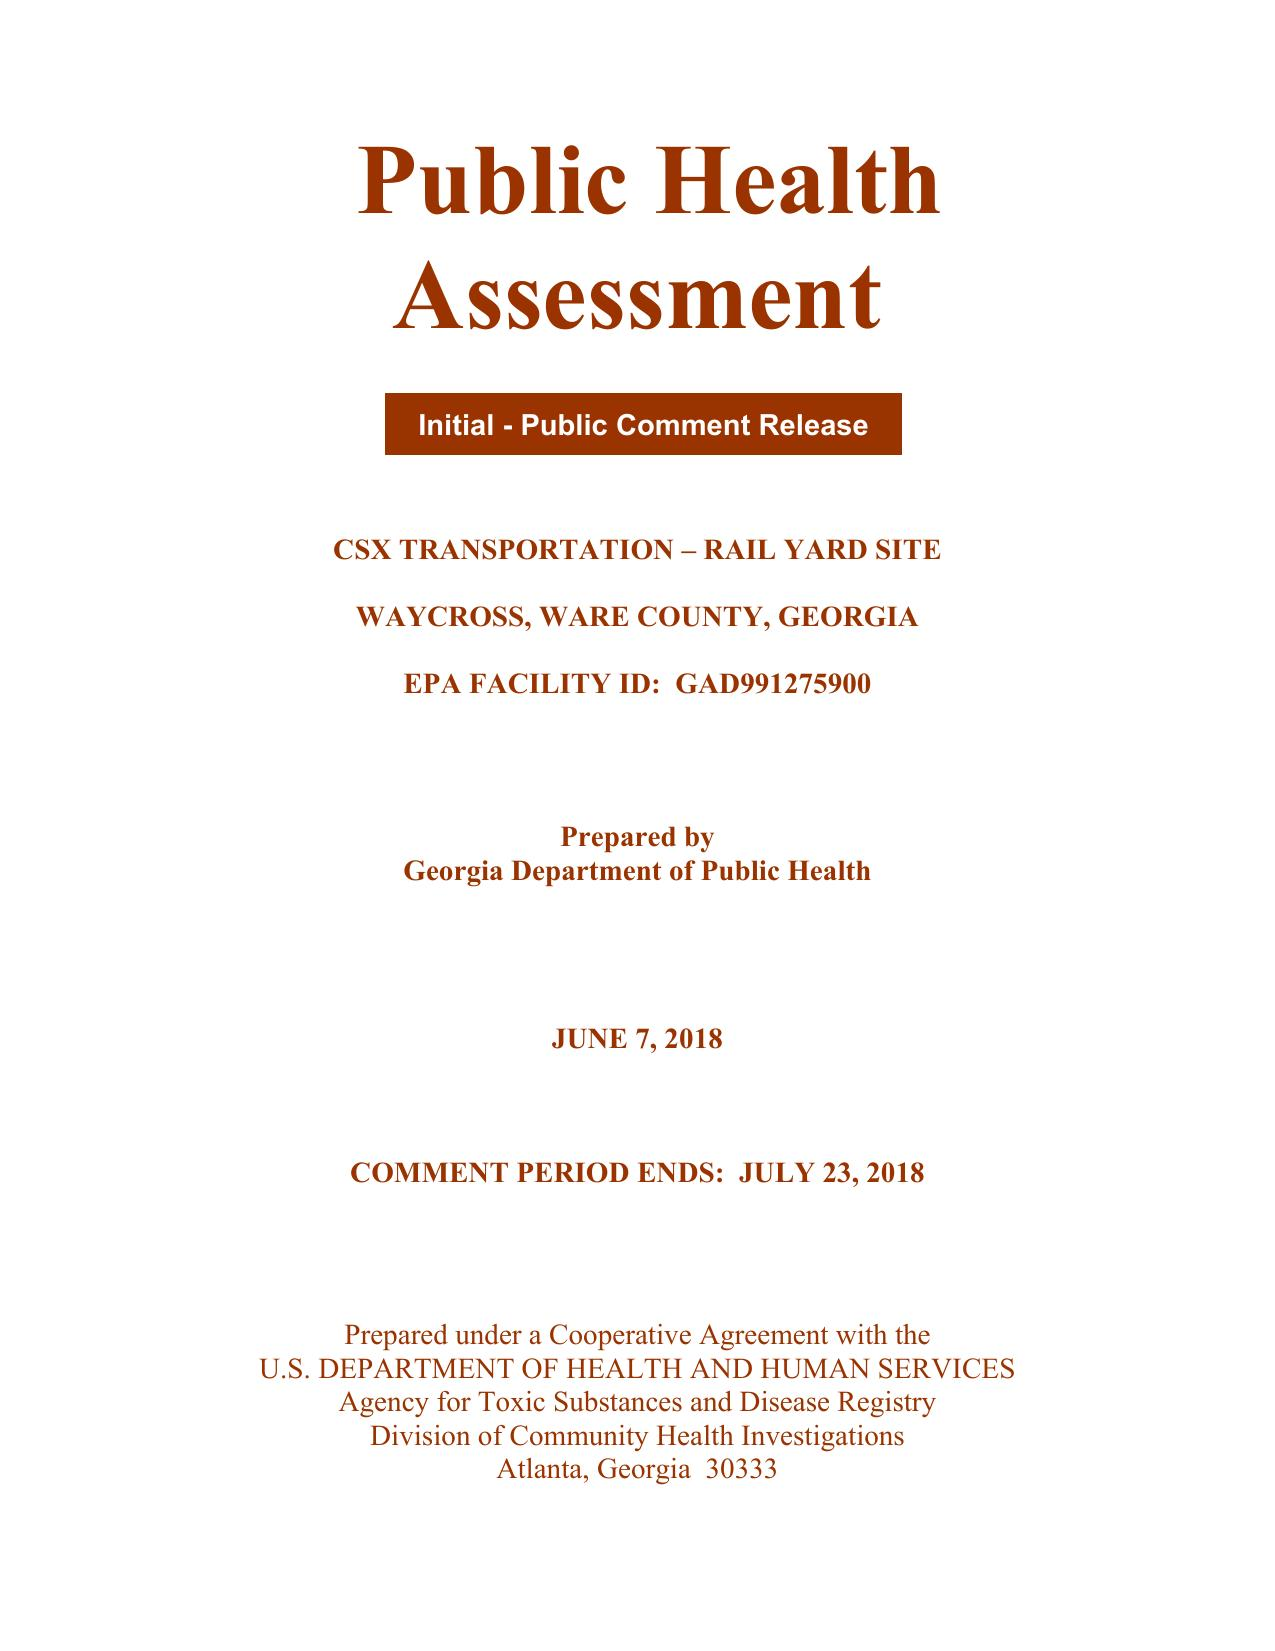 1275x1651 Cover, Pages, in Public Health Assessment of Rice Rail Yard, Waycross, GA, by John S. Quarterman, for WWALS.net, 7 June 2018